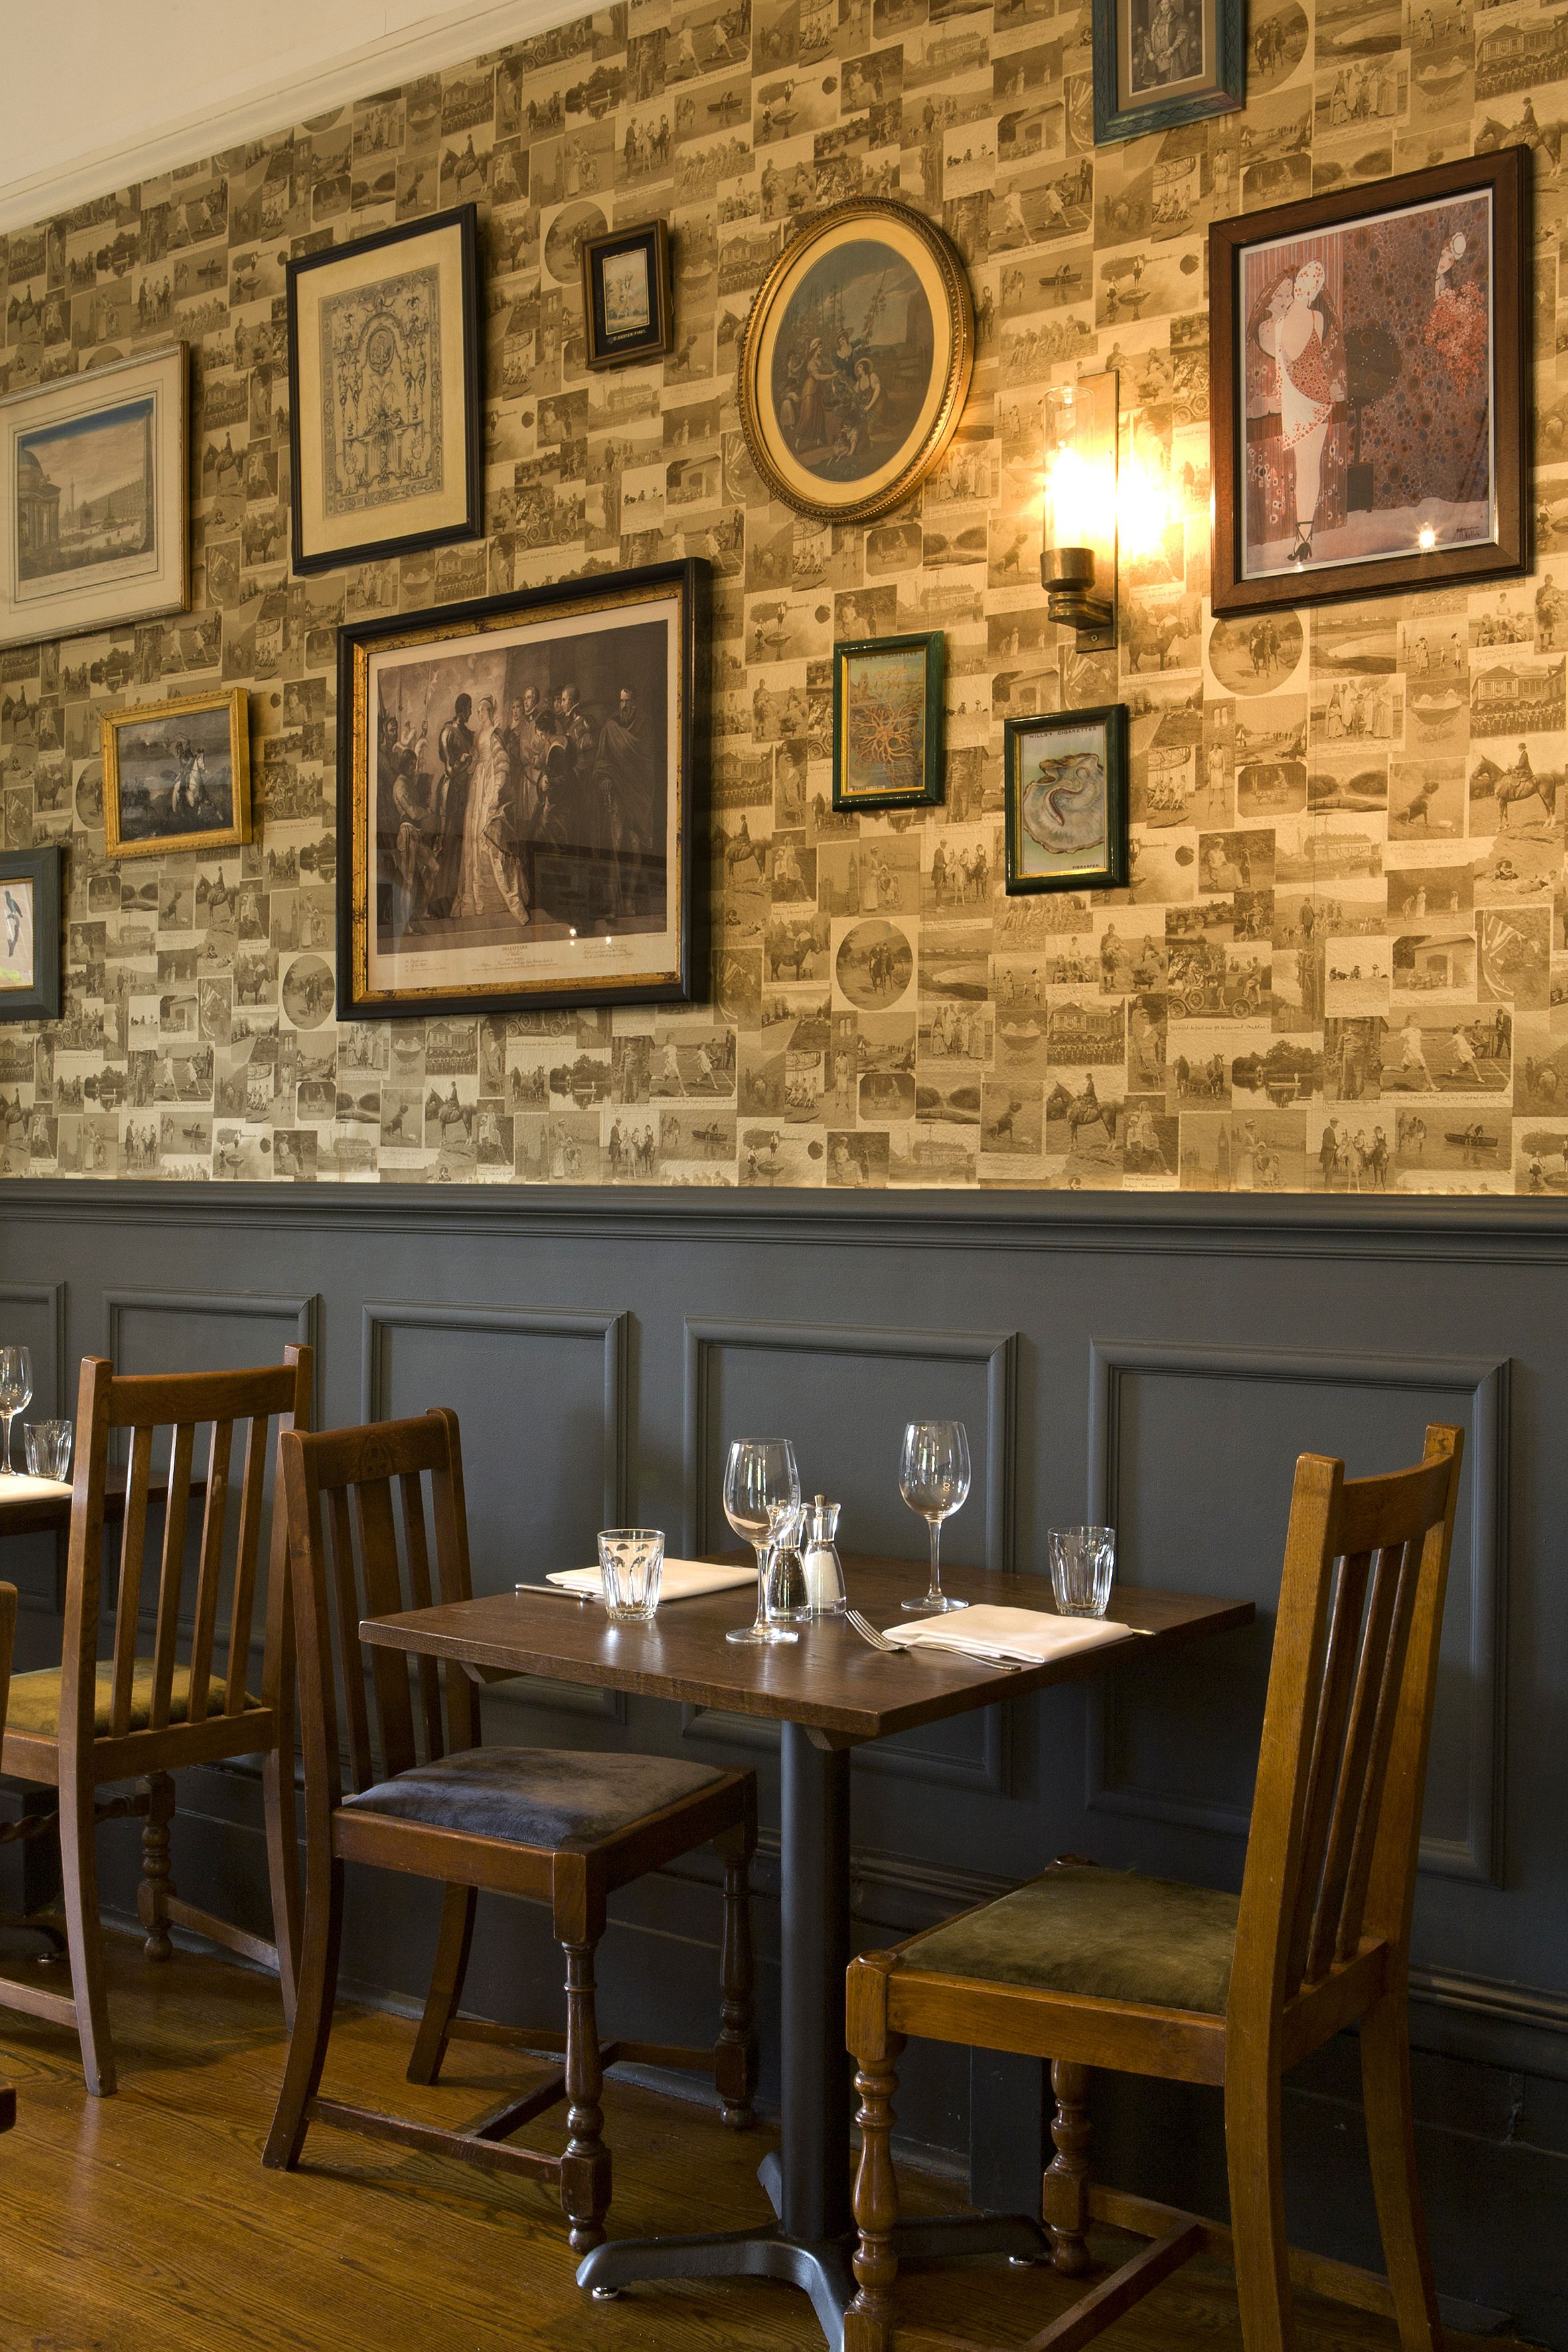 homely idea restaurant decor. We are an interior design  build company with teams in London South Yorkshire and work well renowned brands across the hospitality sector The Rosendale wallpaper joy Pub Pinterest Wallpaper